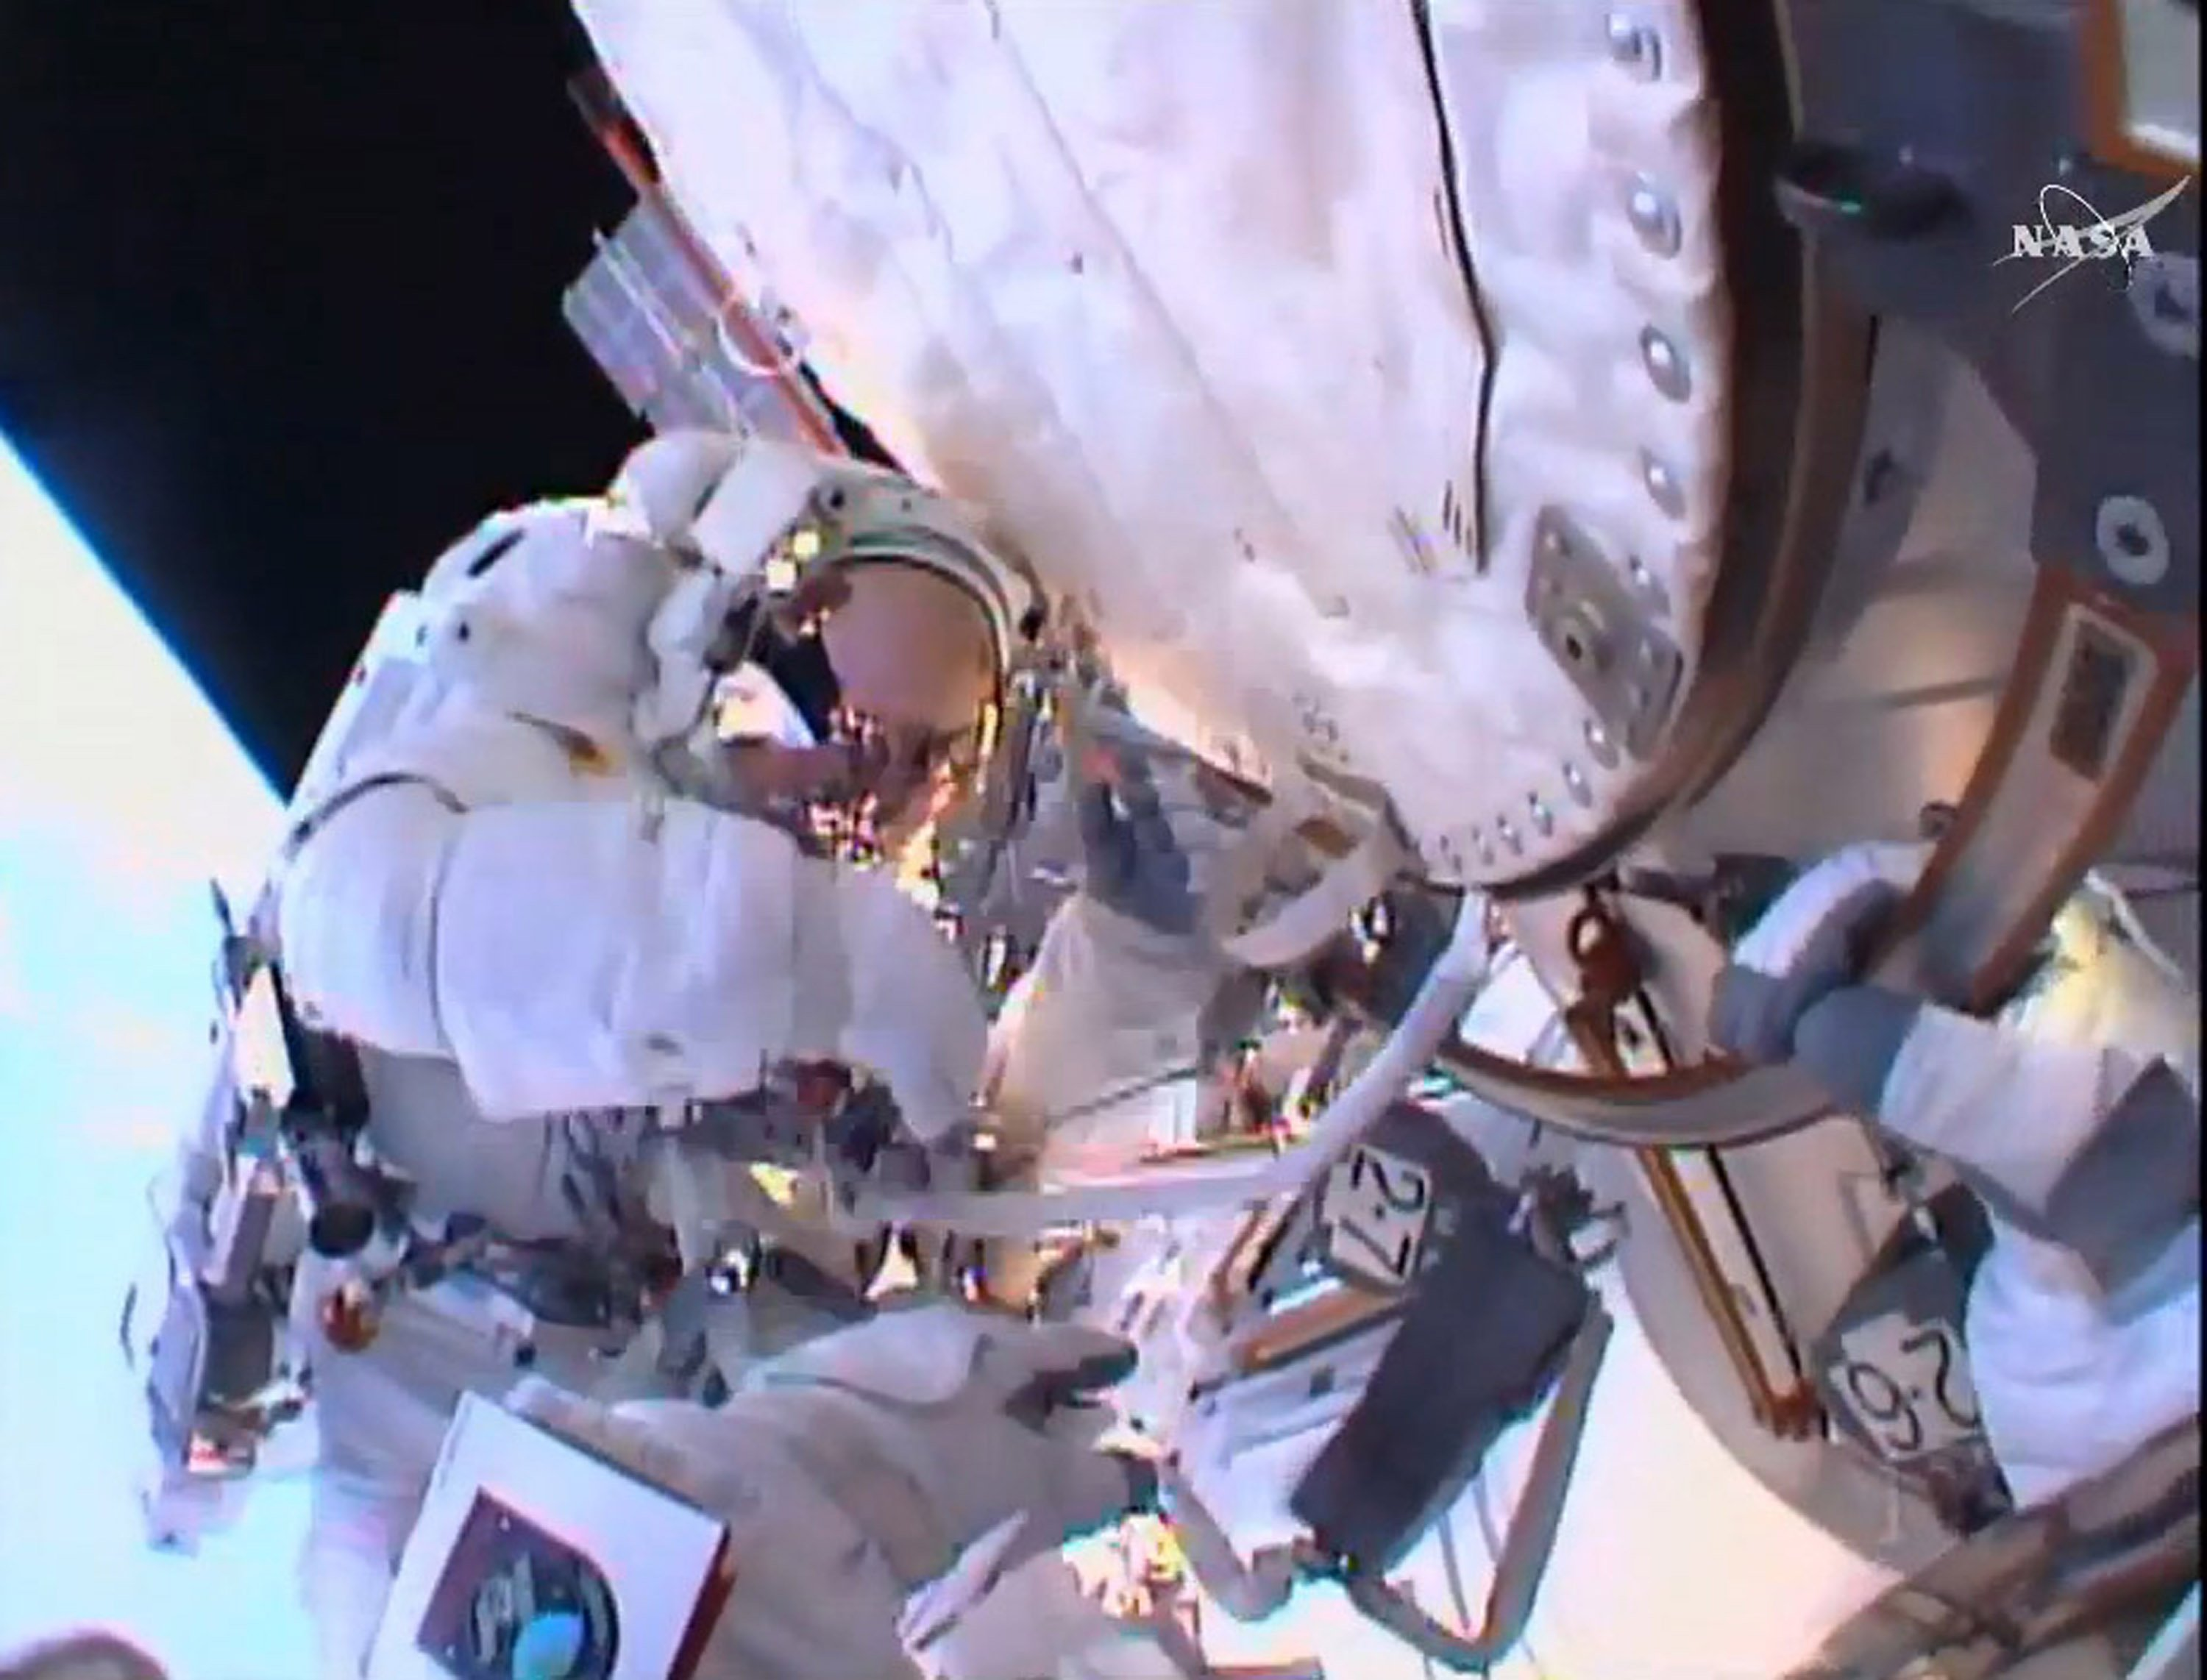 Astronaut Tim Peake seen on his first-ever spacewalk after having replaced a faulty voltage regulator on the International Space Station on Jan. 15, 2016.